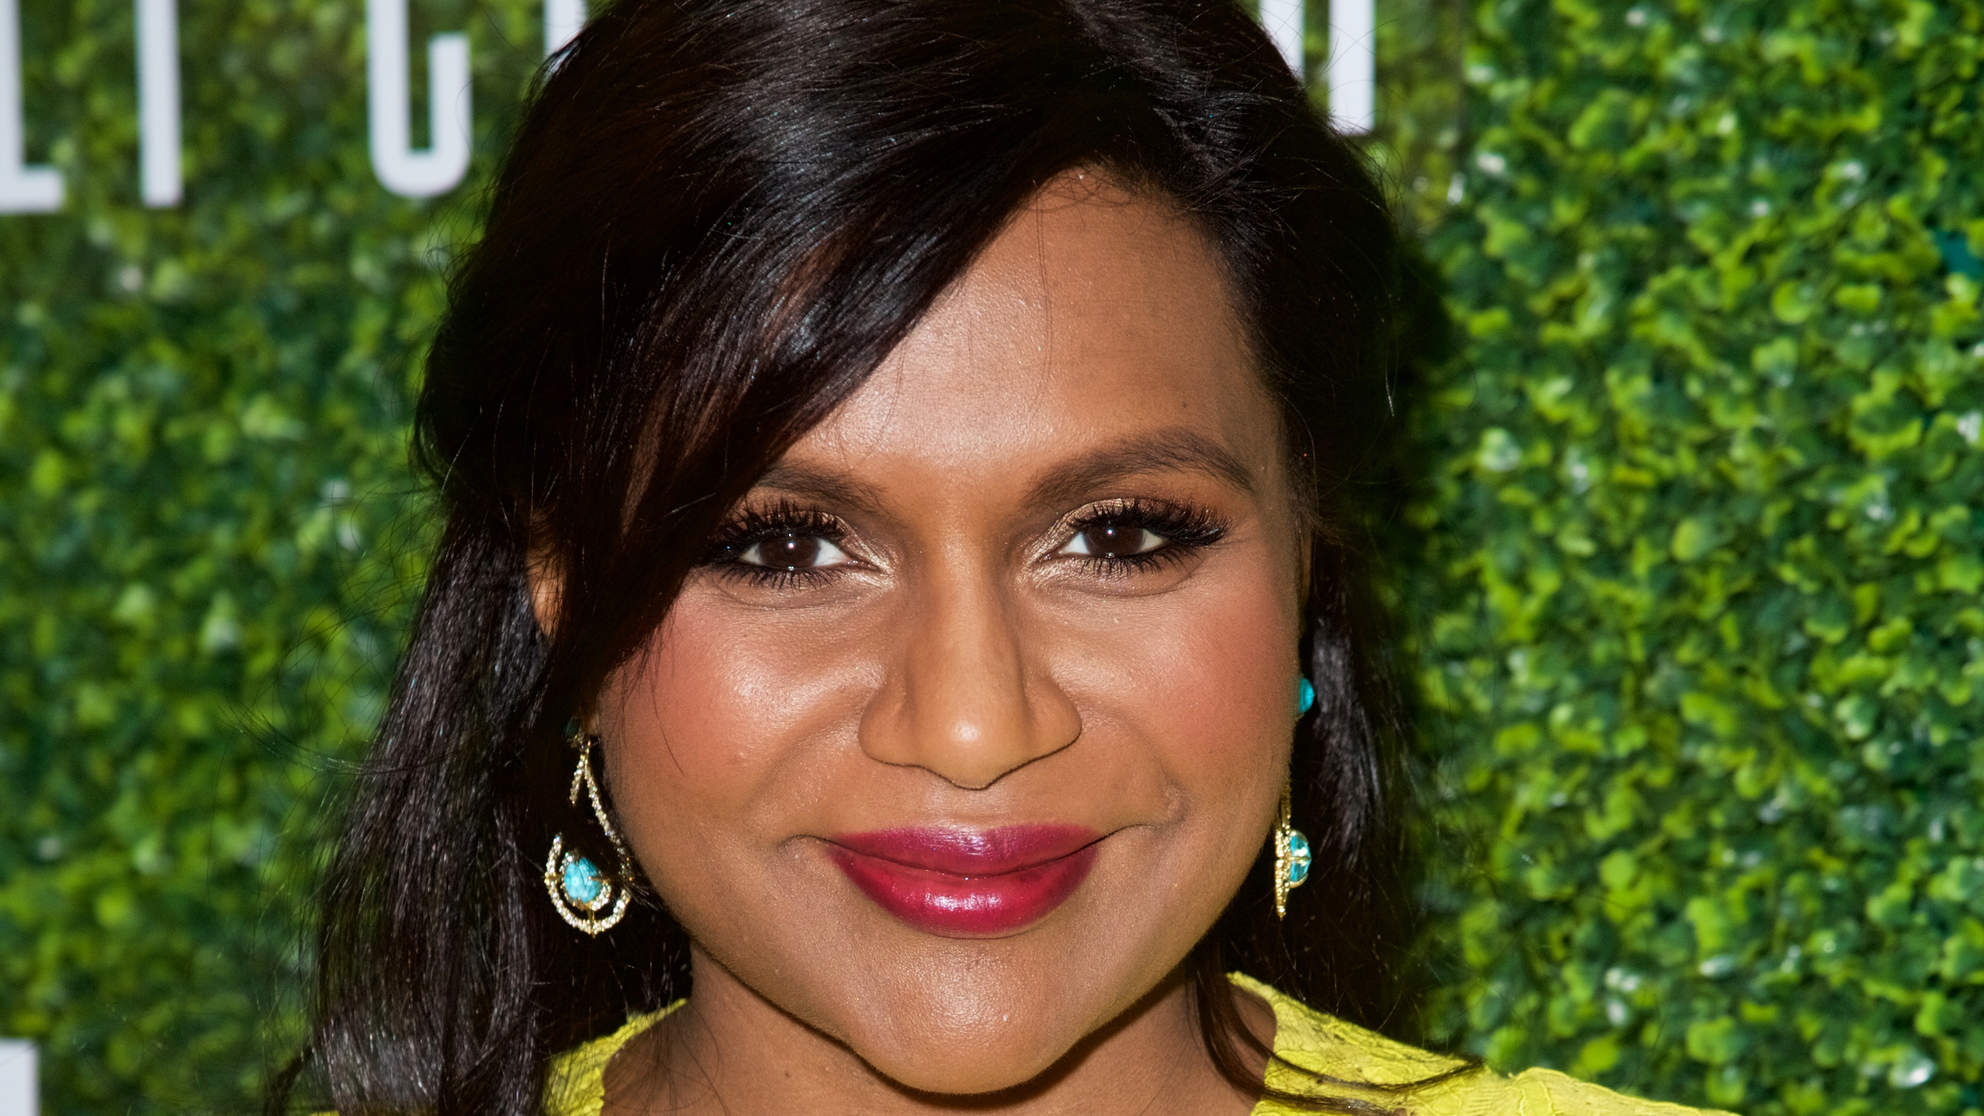 Strike a Pose! Pregnant Mindy Kaling Shows Off Baby Bump While Practicing Yoga